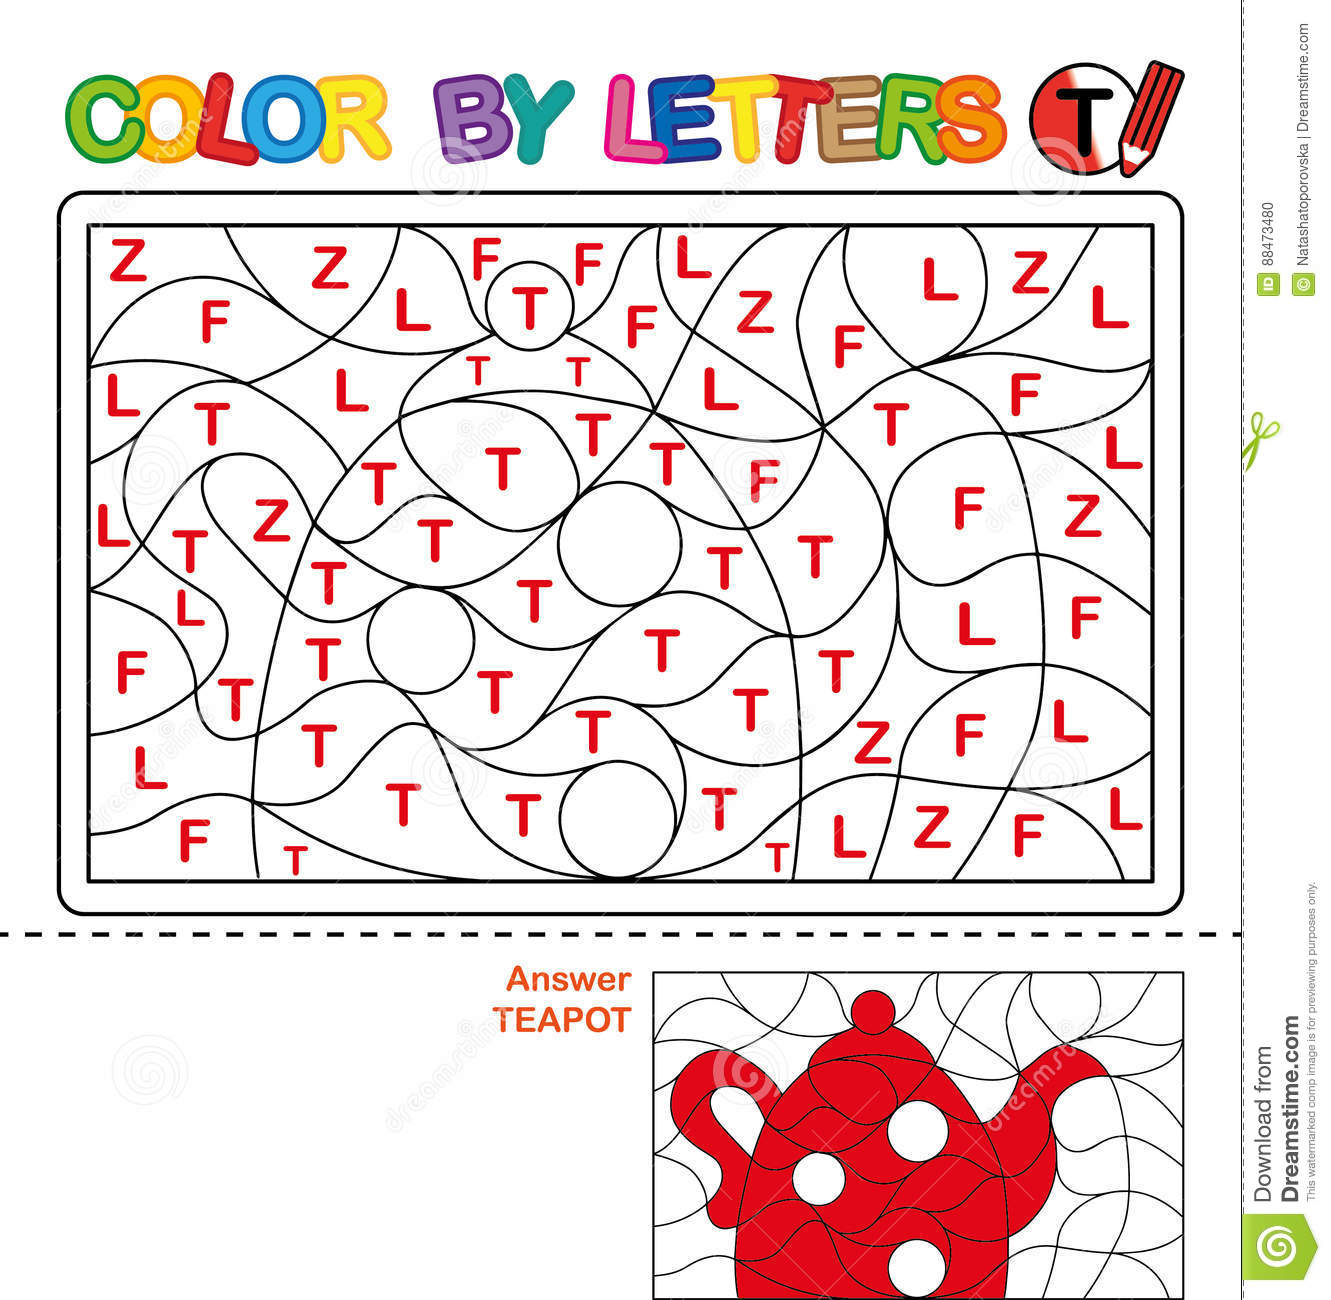 Download Color By Letter Puzzle For Children Teapot Stock Vector